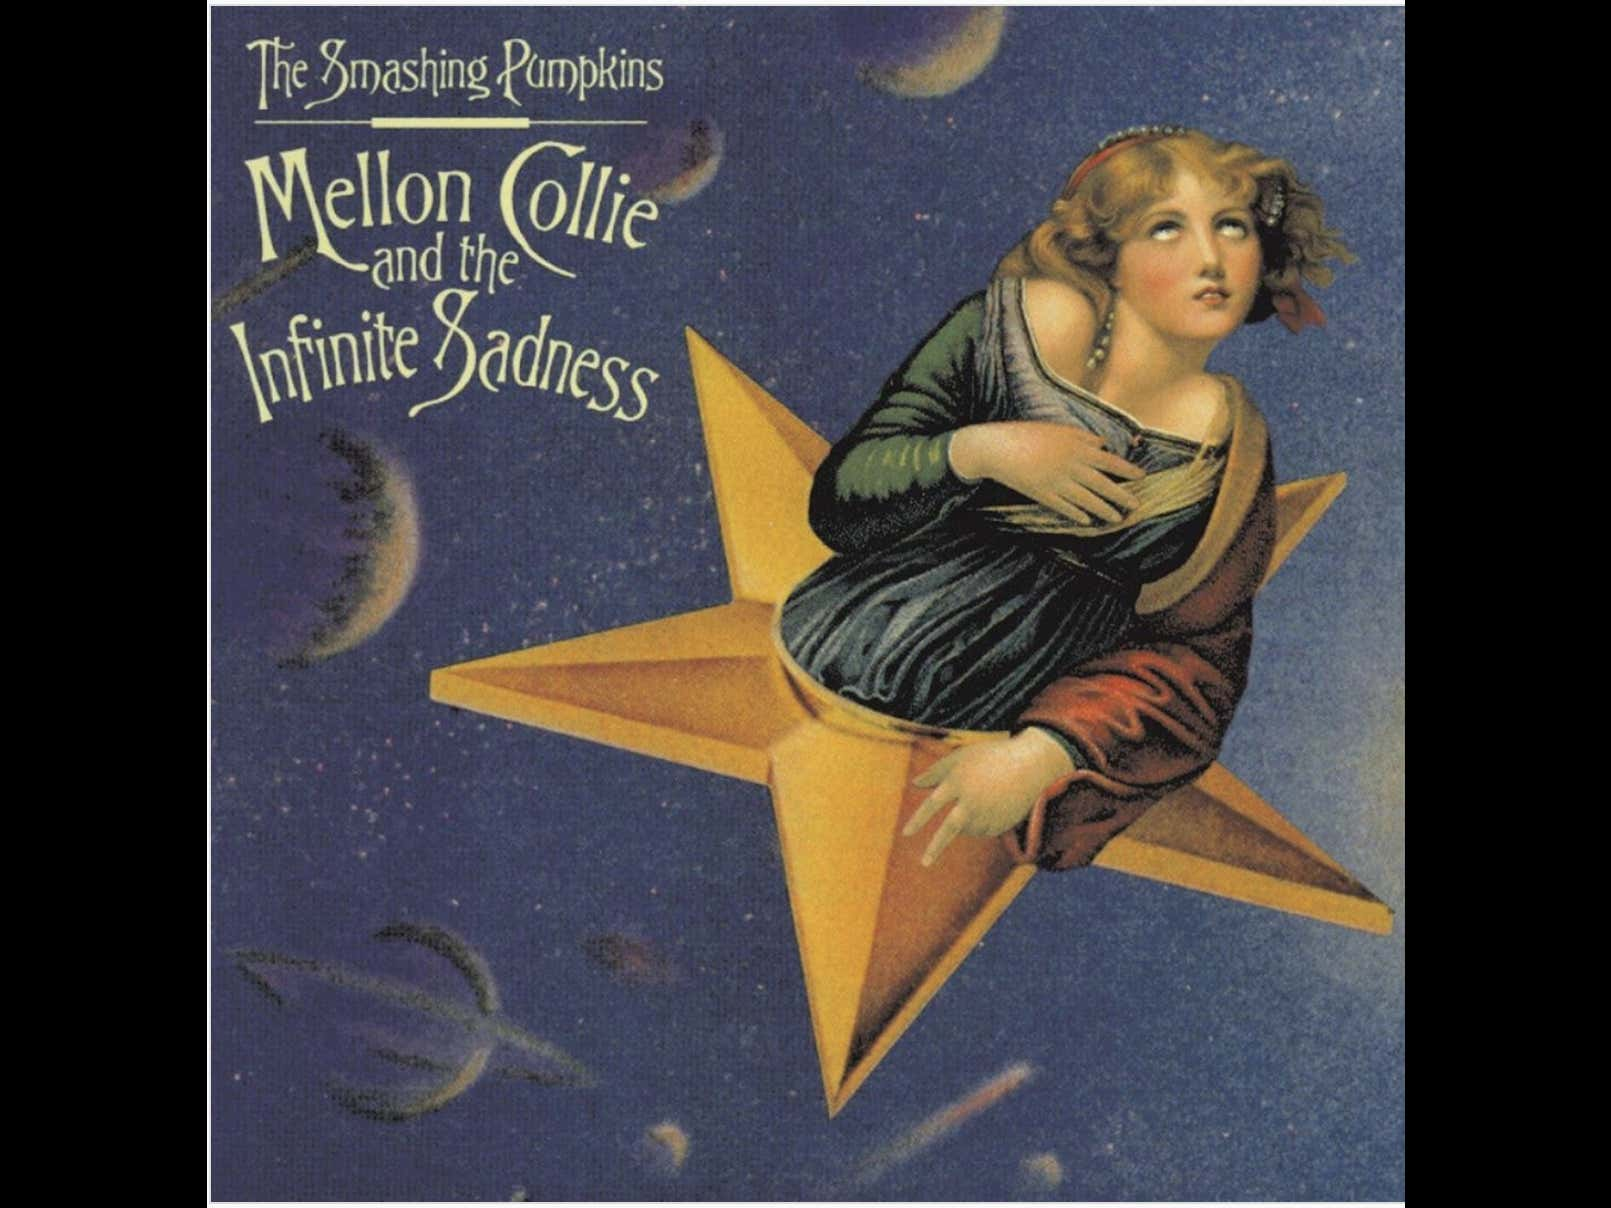 """25 Years Ago Today The Smashing Pumpkins Dropped """"Mellon Collie And The Infinite Sadness"""""""